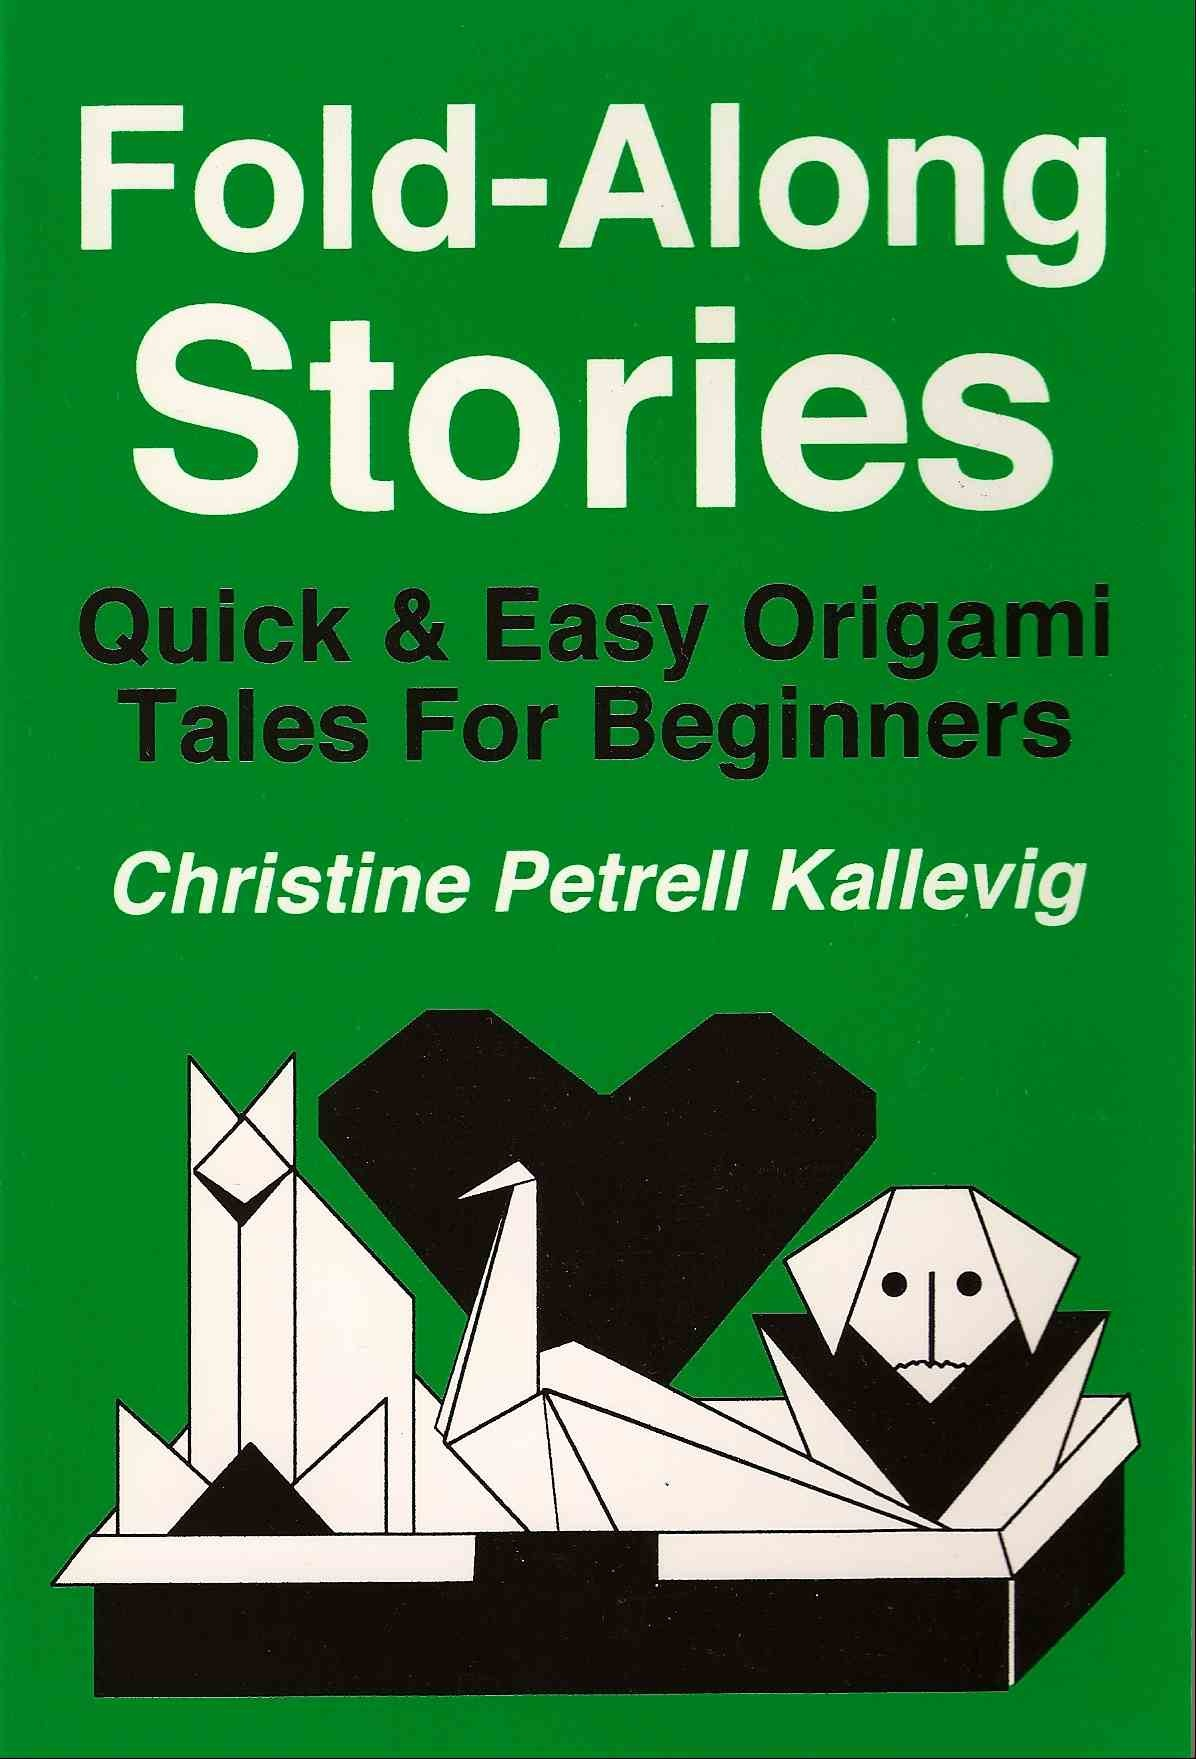 Storigami book Fold Along Stories Quick and Easy Origami Tales for Beginners by Christine Petrell Kallevig